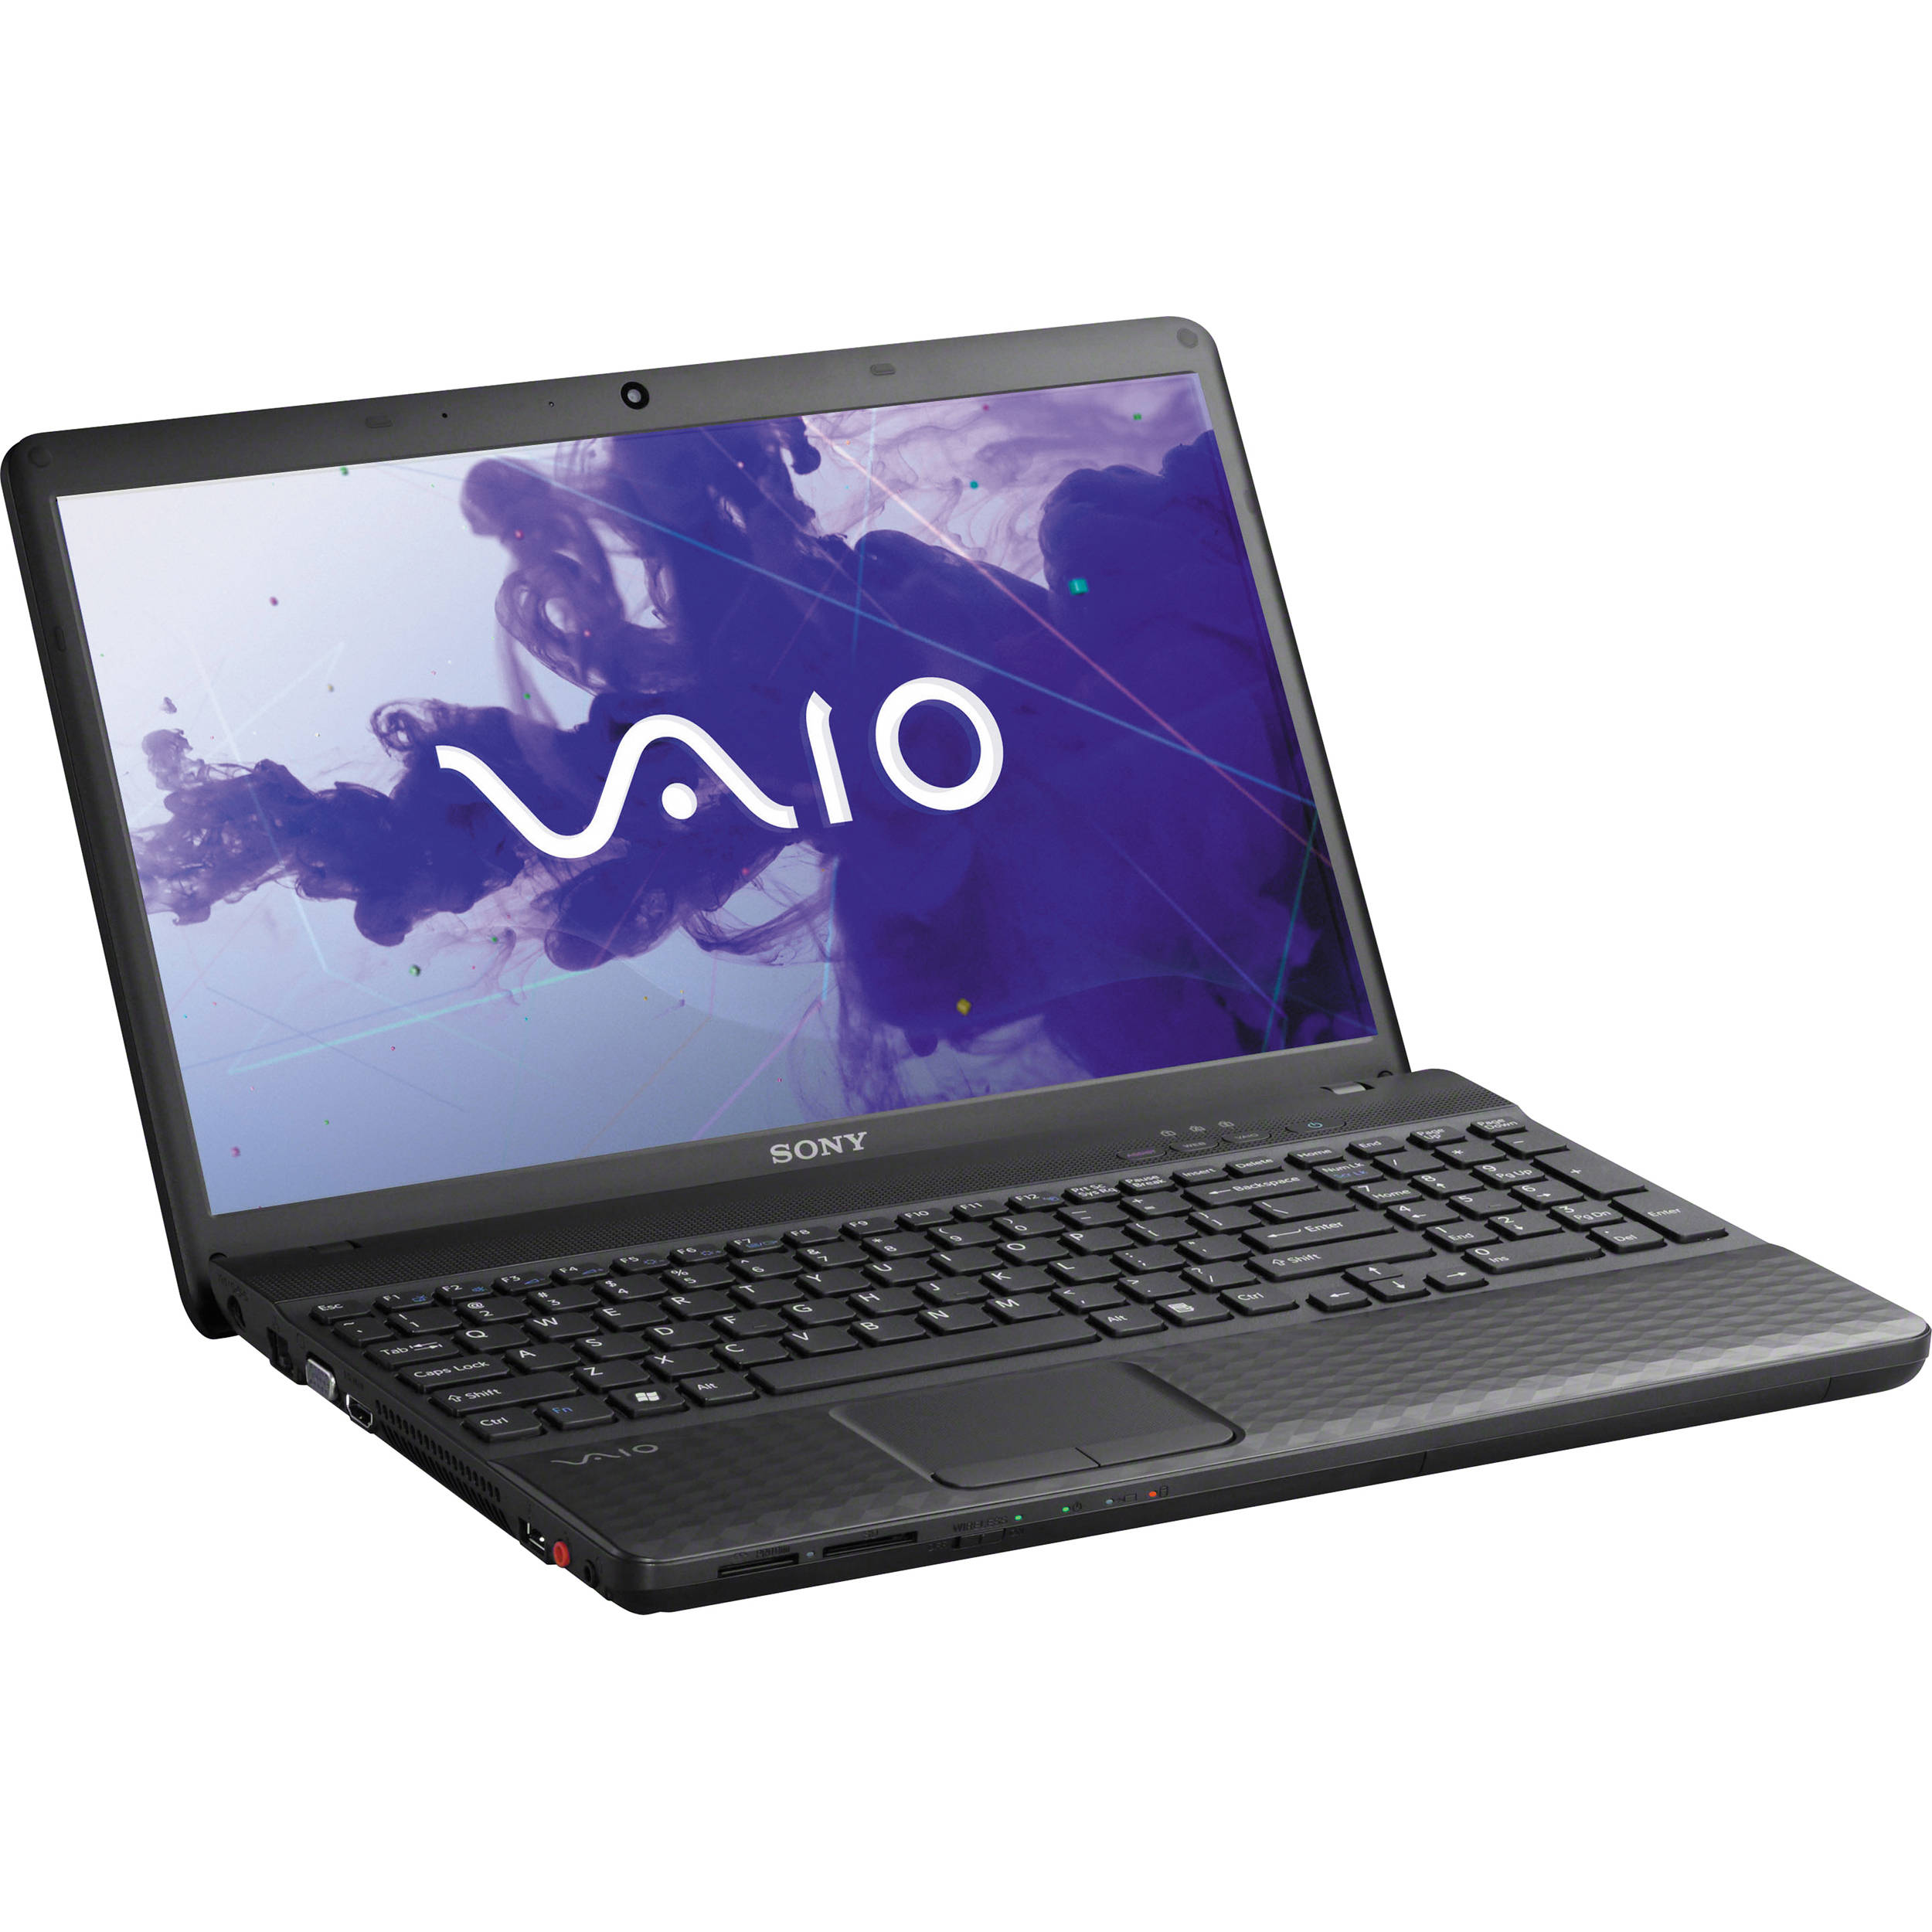 Sony Vaio VPCEH2DFX/B Alps TouchPad Windows Vista 64-BIT